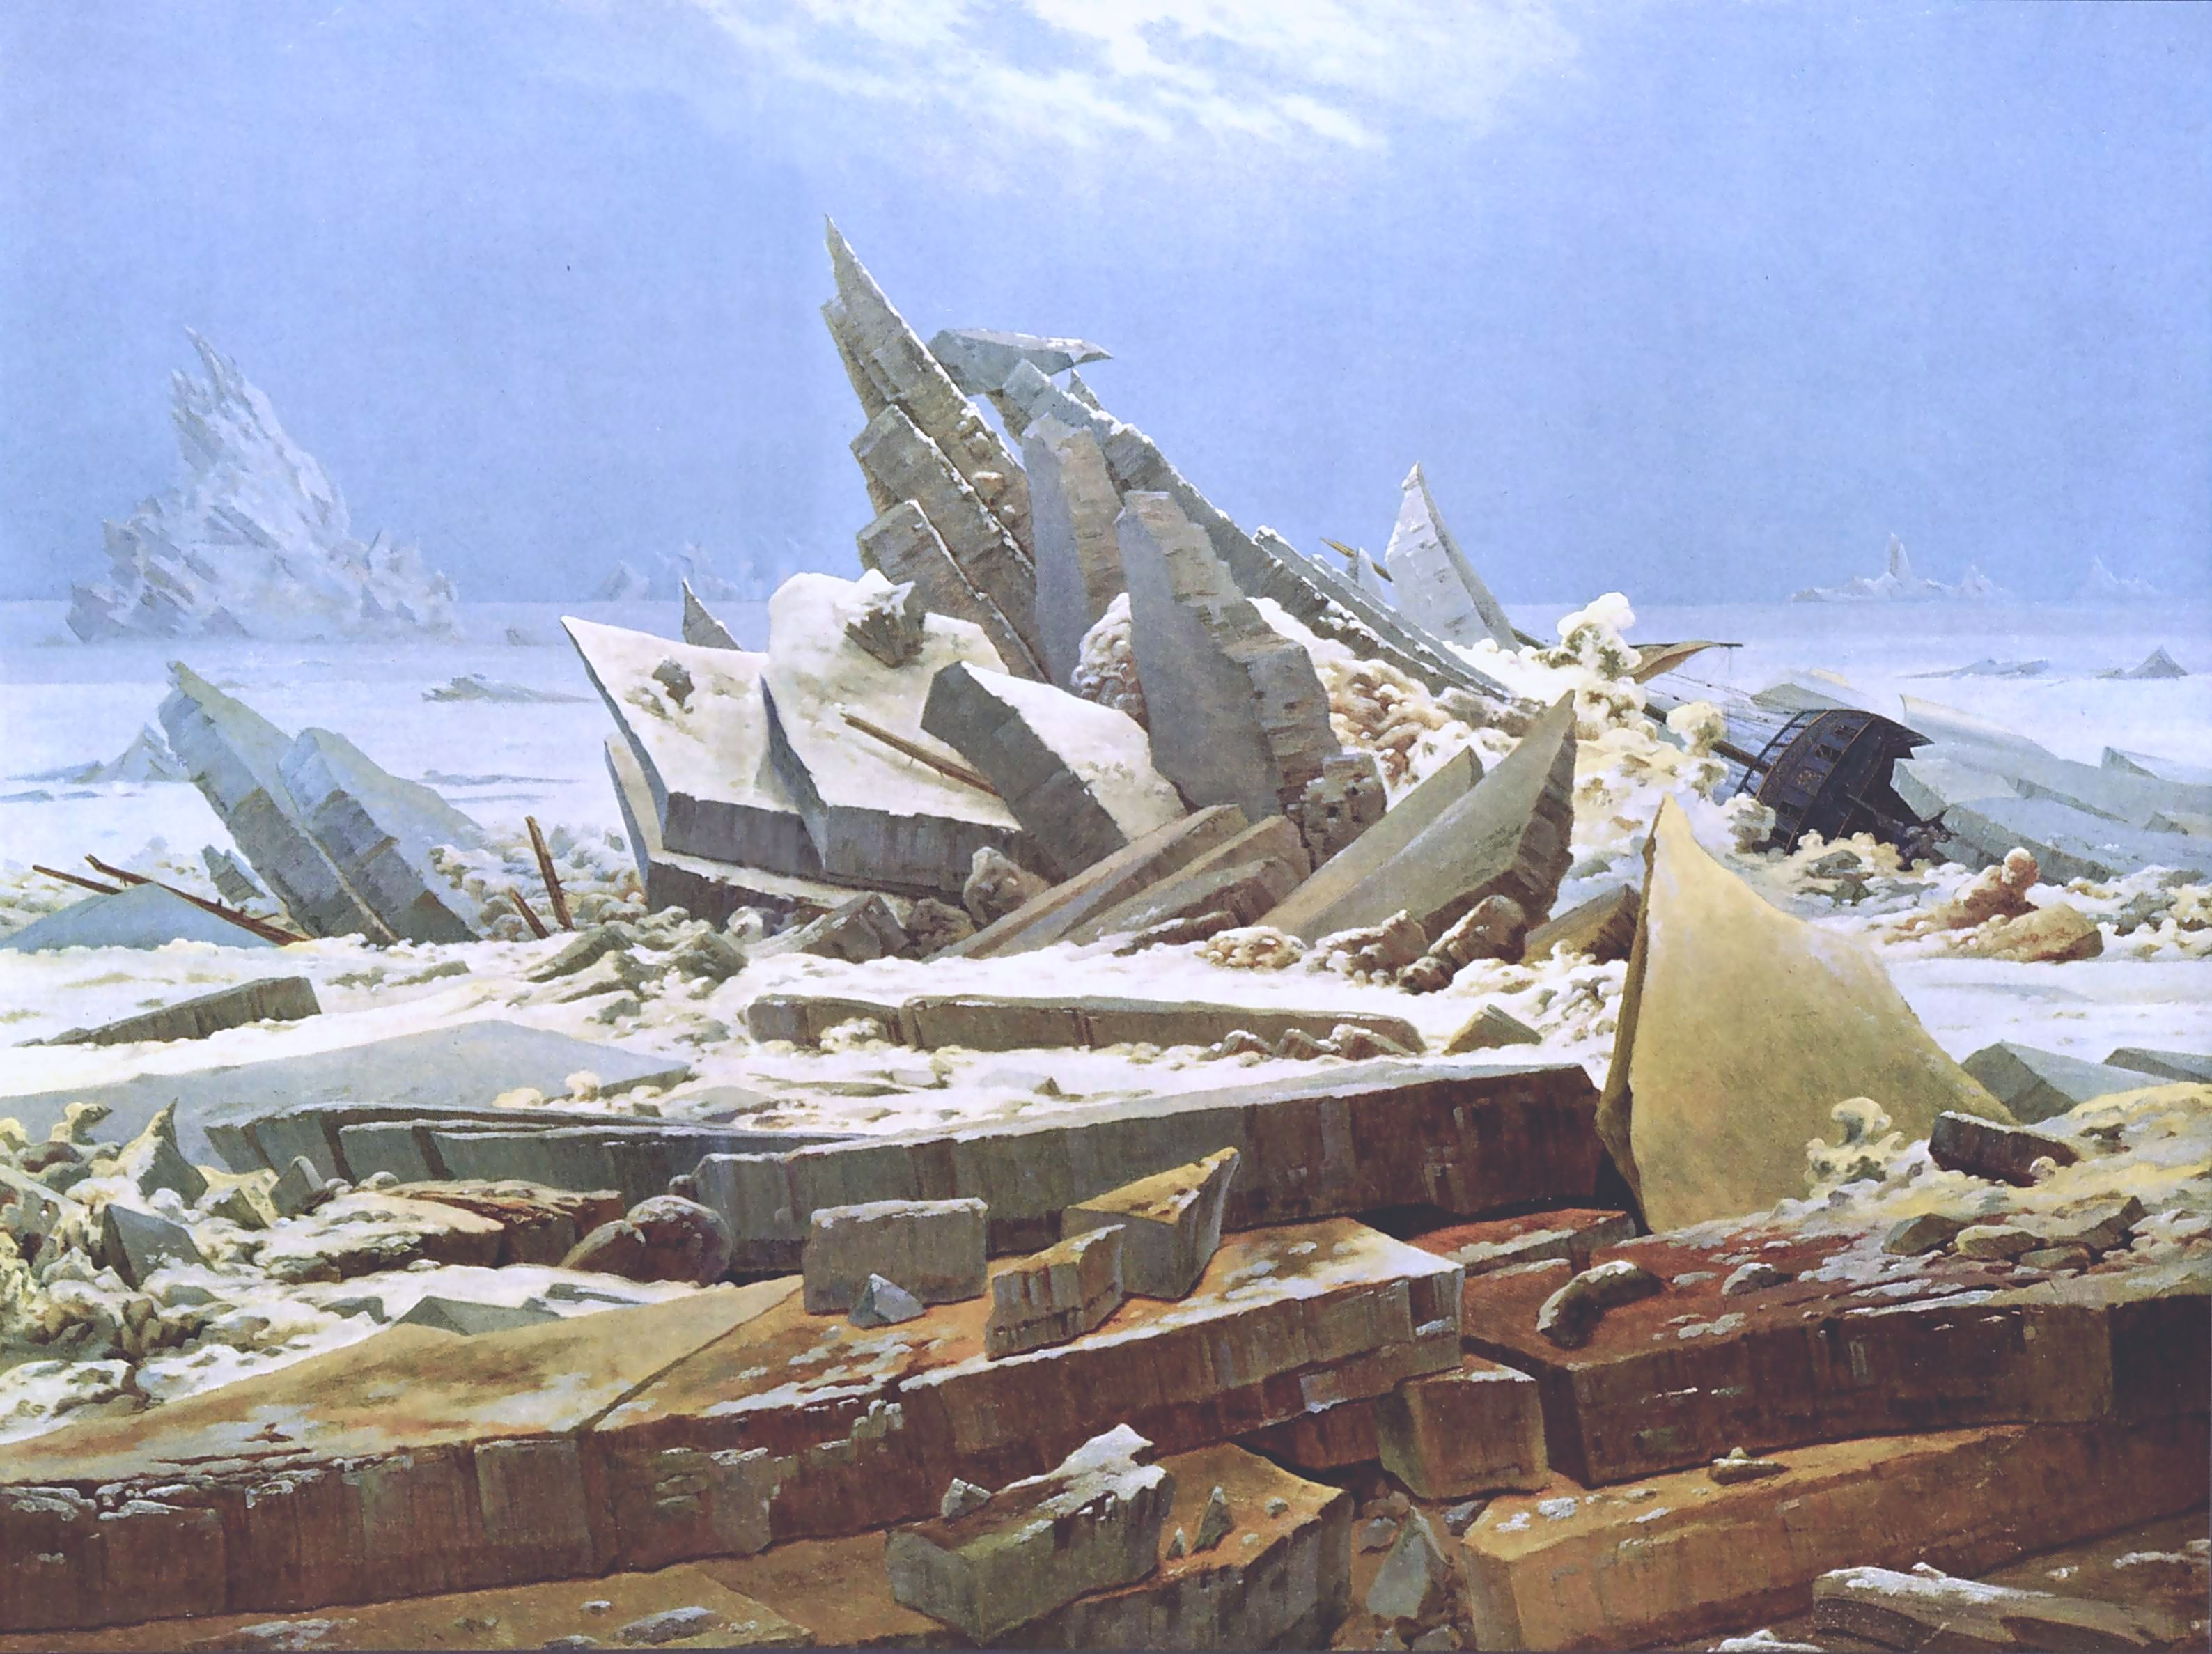 The Sea of Ice, also called The Wreck of Hope is an oil painting of 1823–1824 by the German Romantic artist Caspar David Friedrich